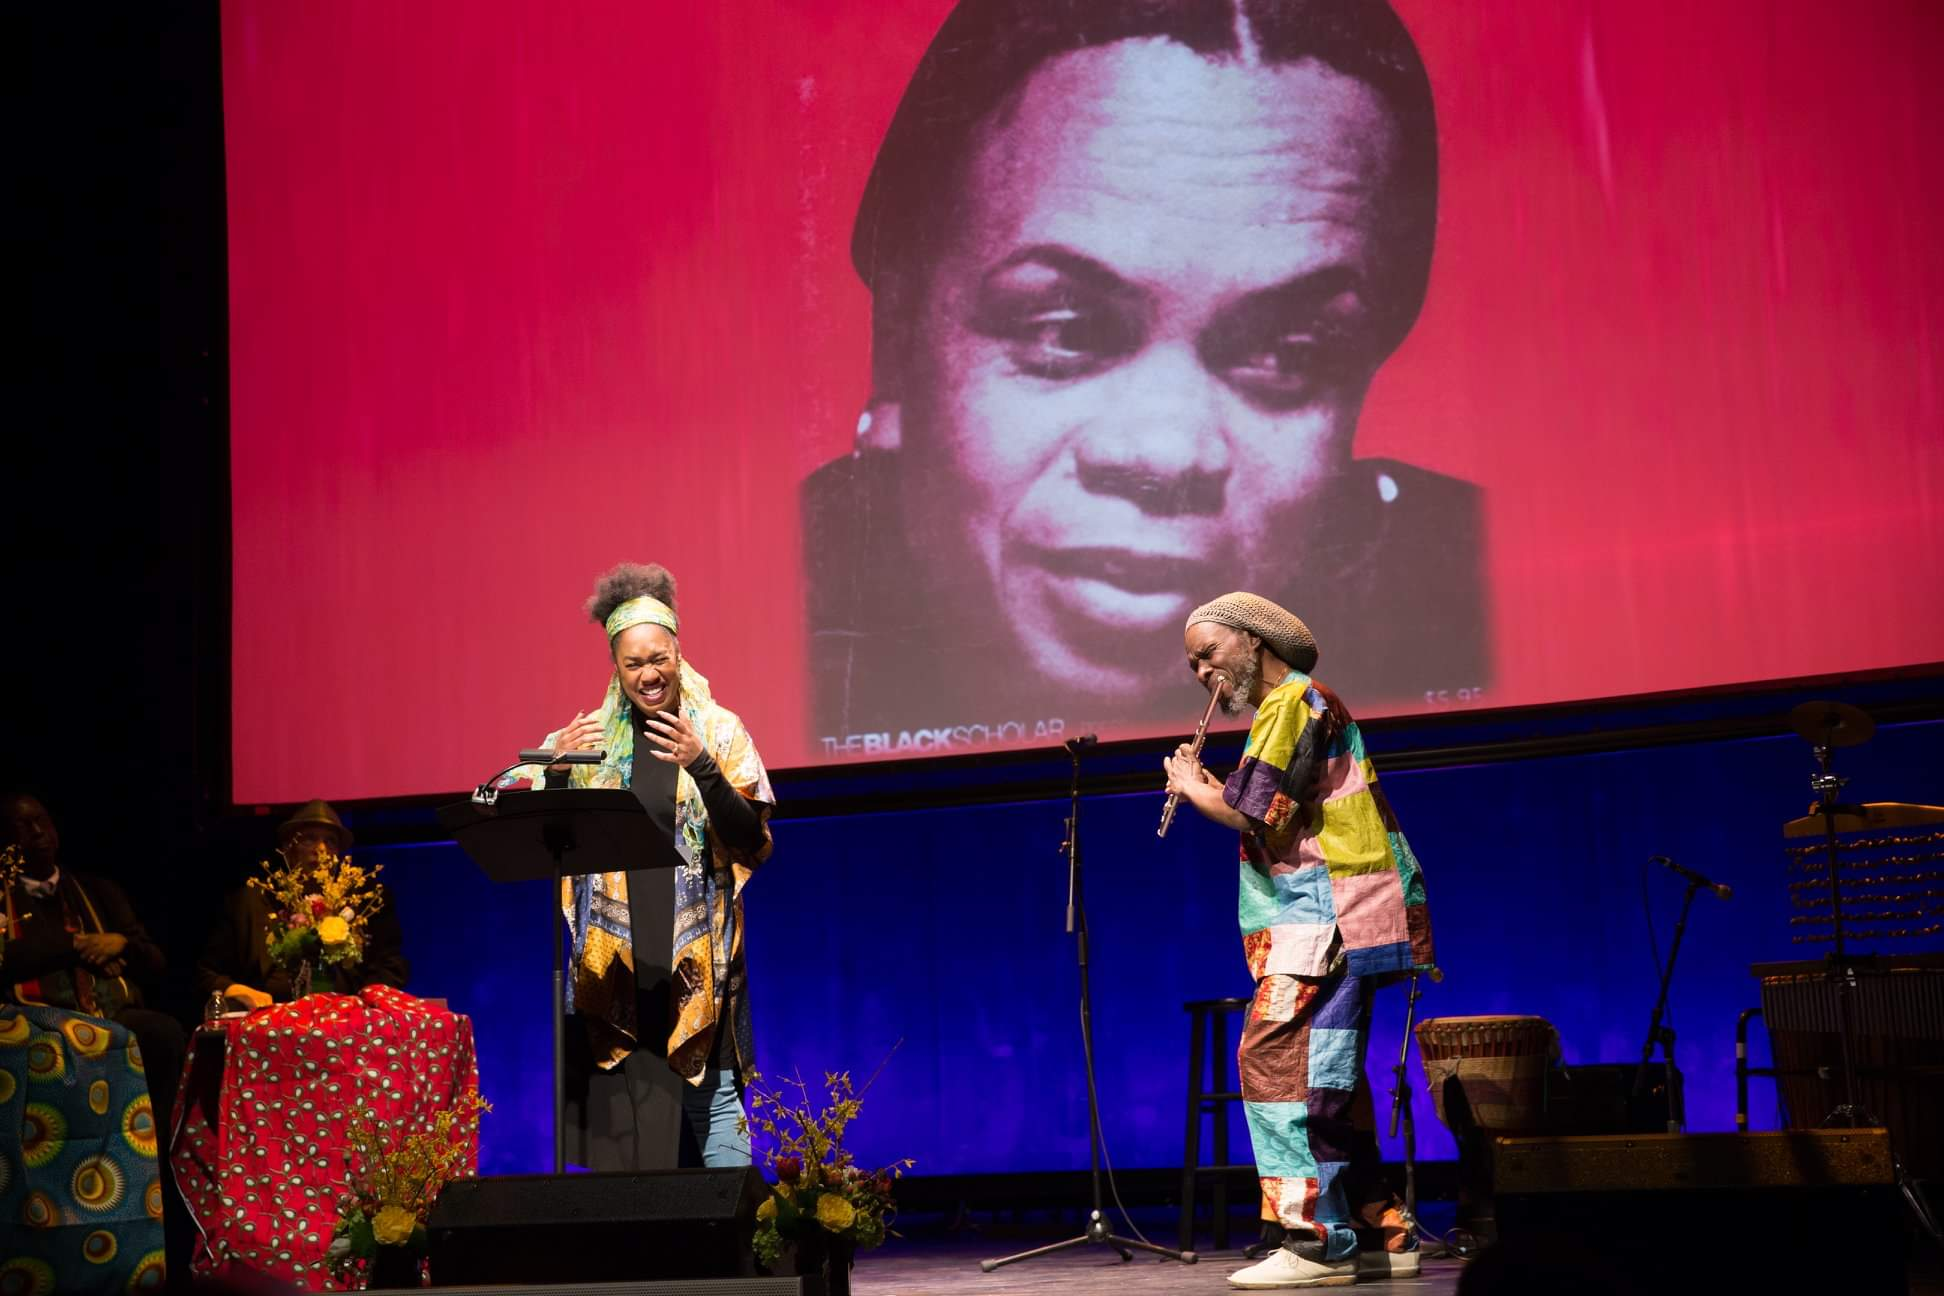 Tribute to Sonia Sanchez at The Schomburg Center for Research in Black Culture (April 2019) curated by Novella Ford and Khalilah Bates photo Chester Higgins